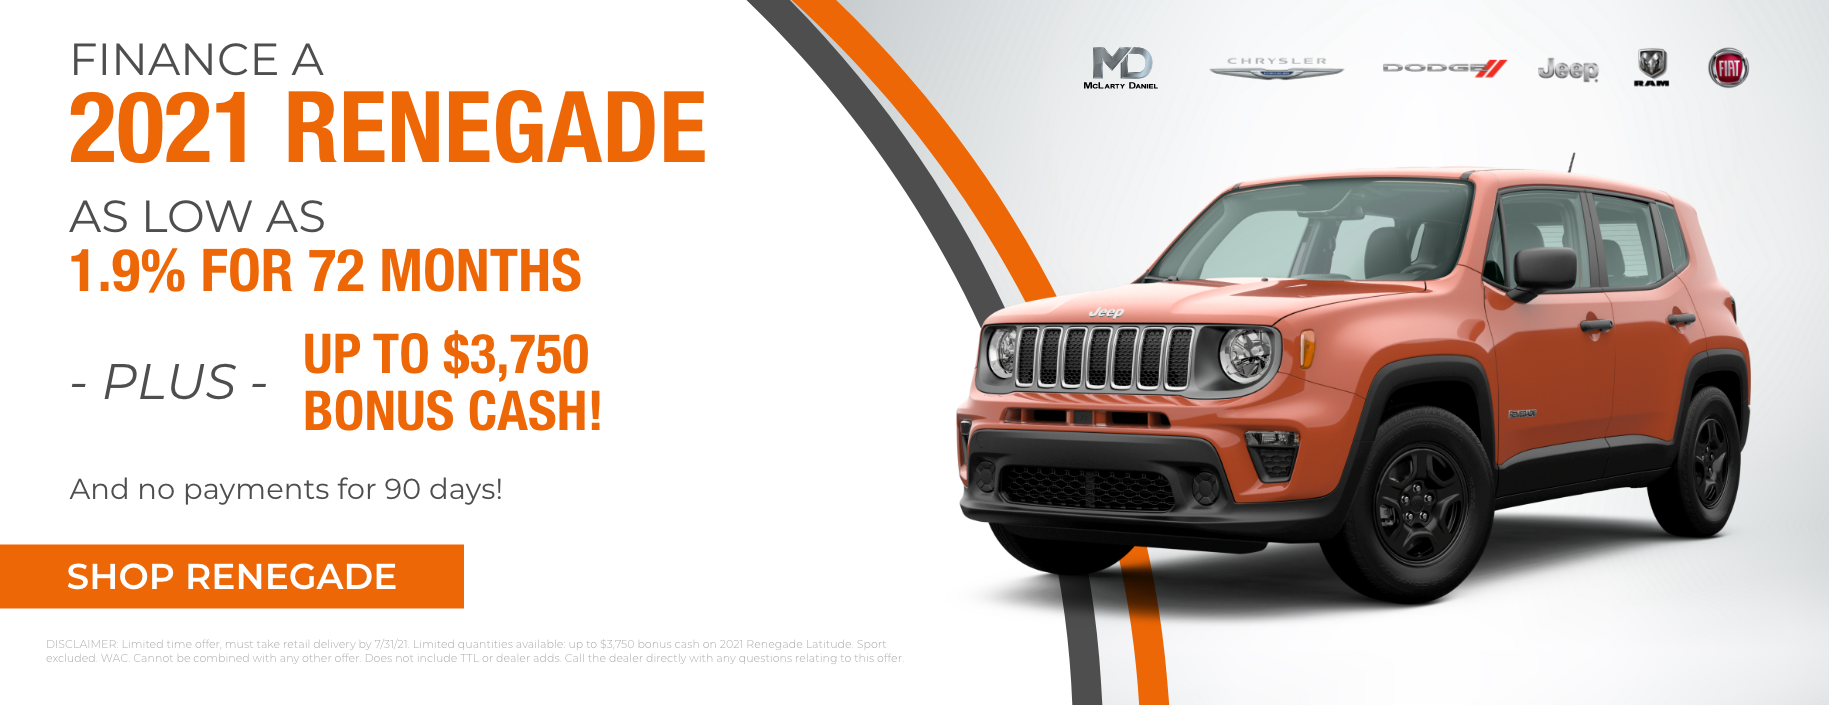 Finance a 2021 Renegade as low as 1.9% for 72 months plus up to $3,750 bonus cash! 90 days to first payment!